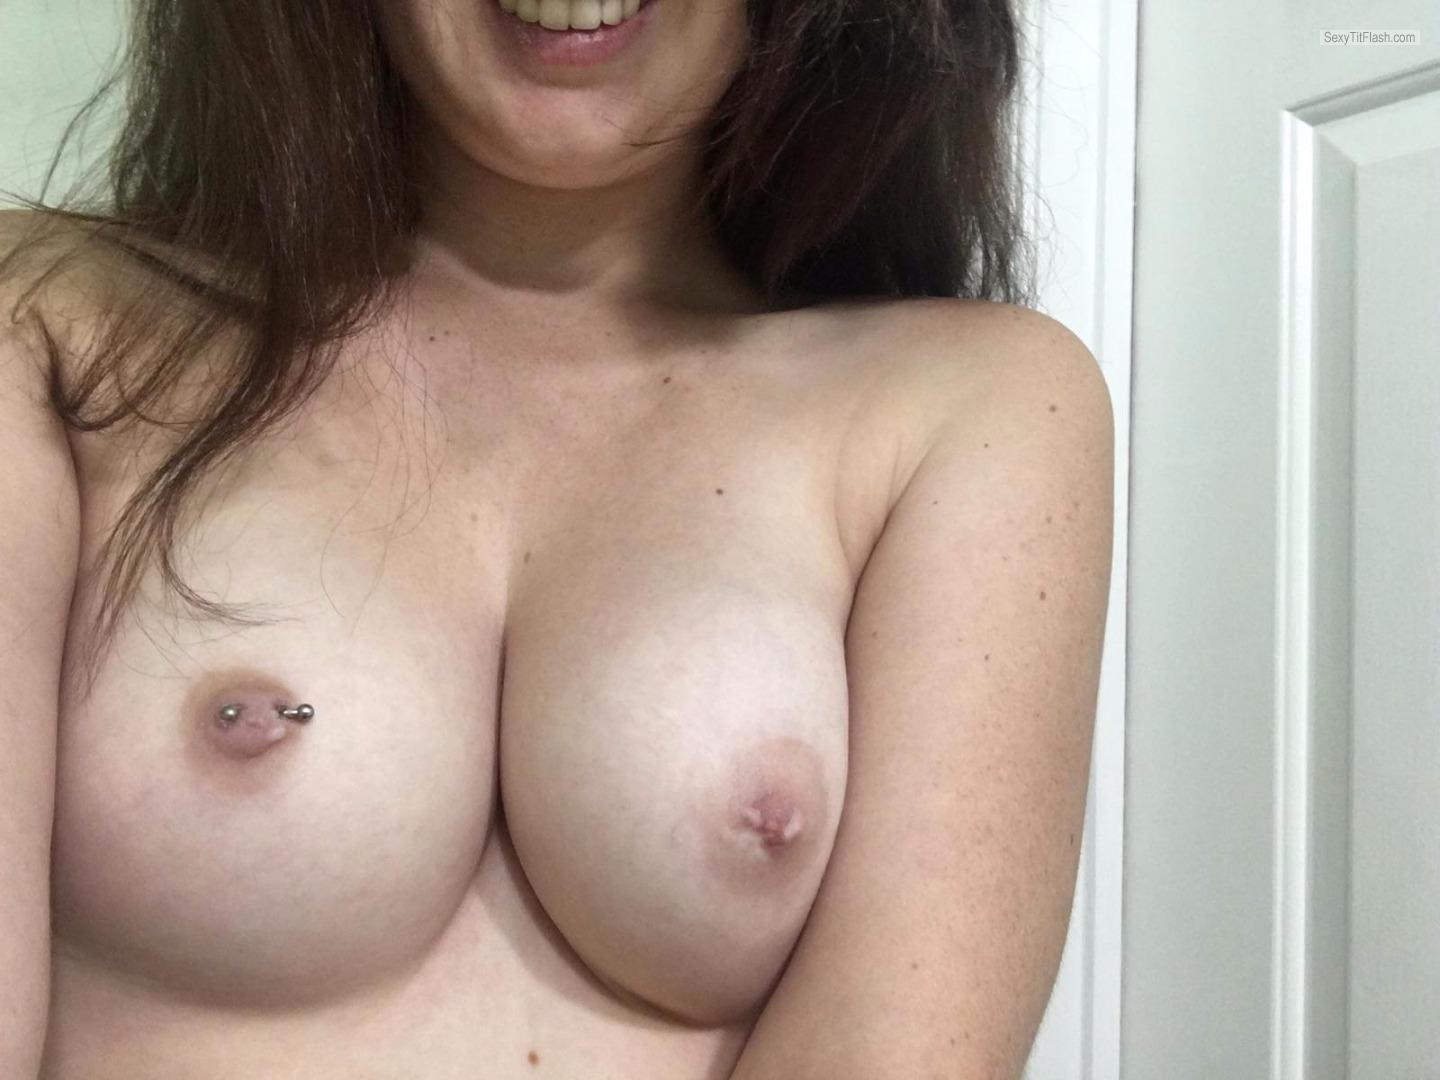 My Very small Tits Topless Alexus Fredo Tits